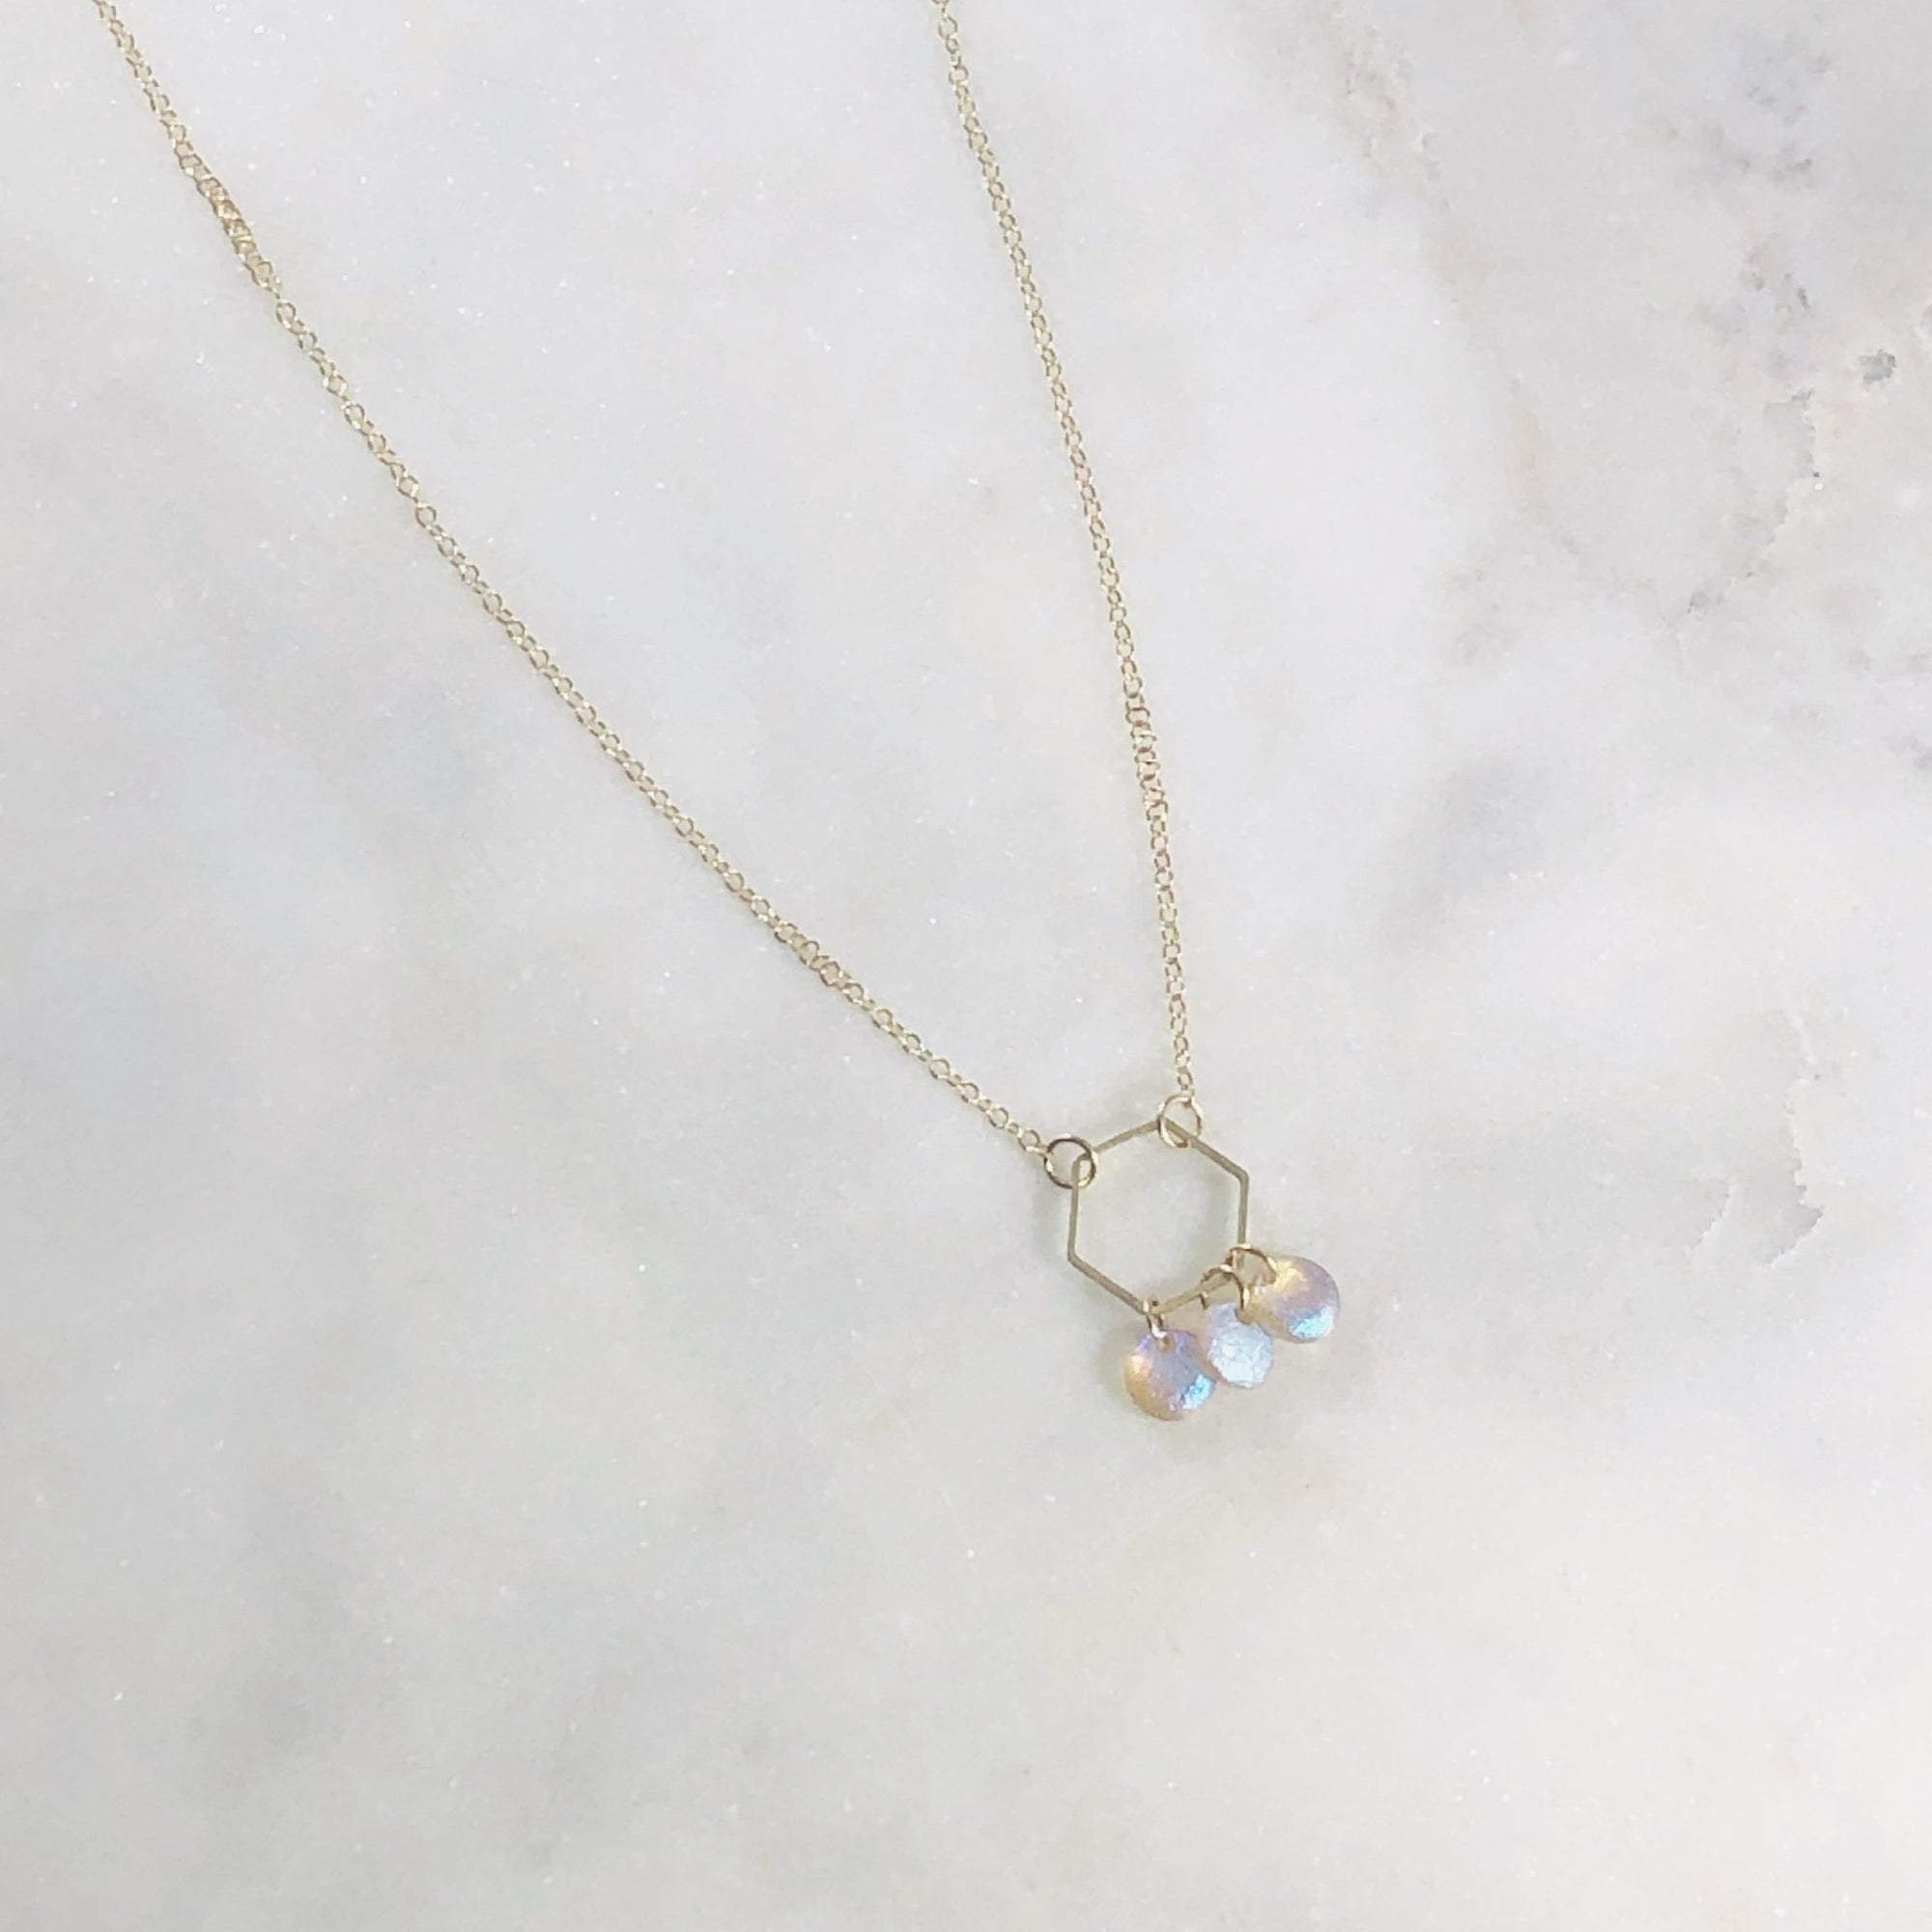 Unique handmade necklace with brass hexagon and czech glass to symbolize balance and shining your light